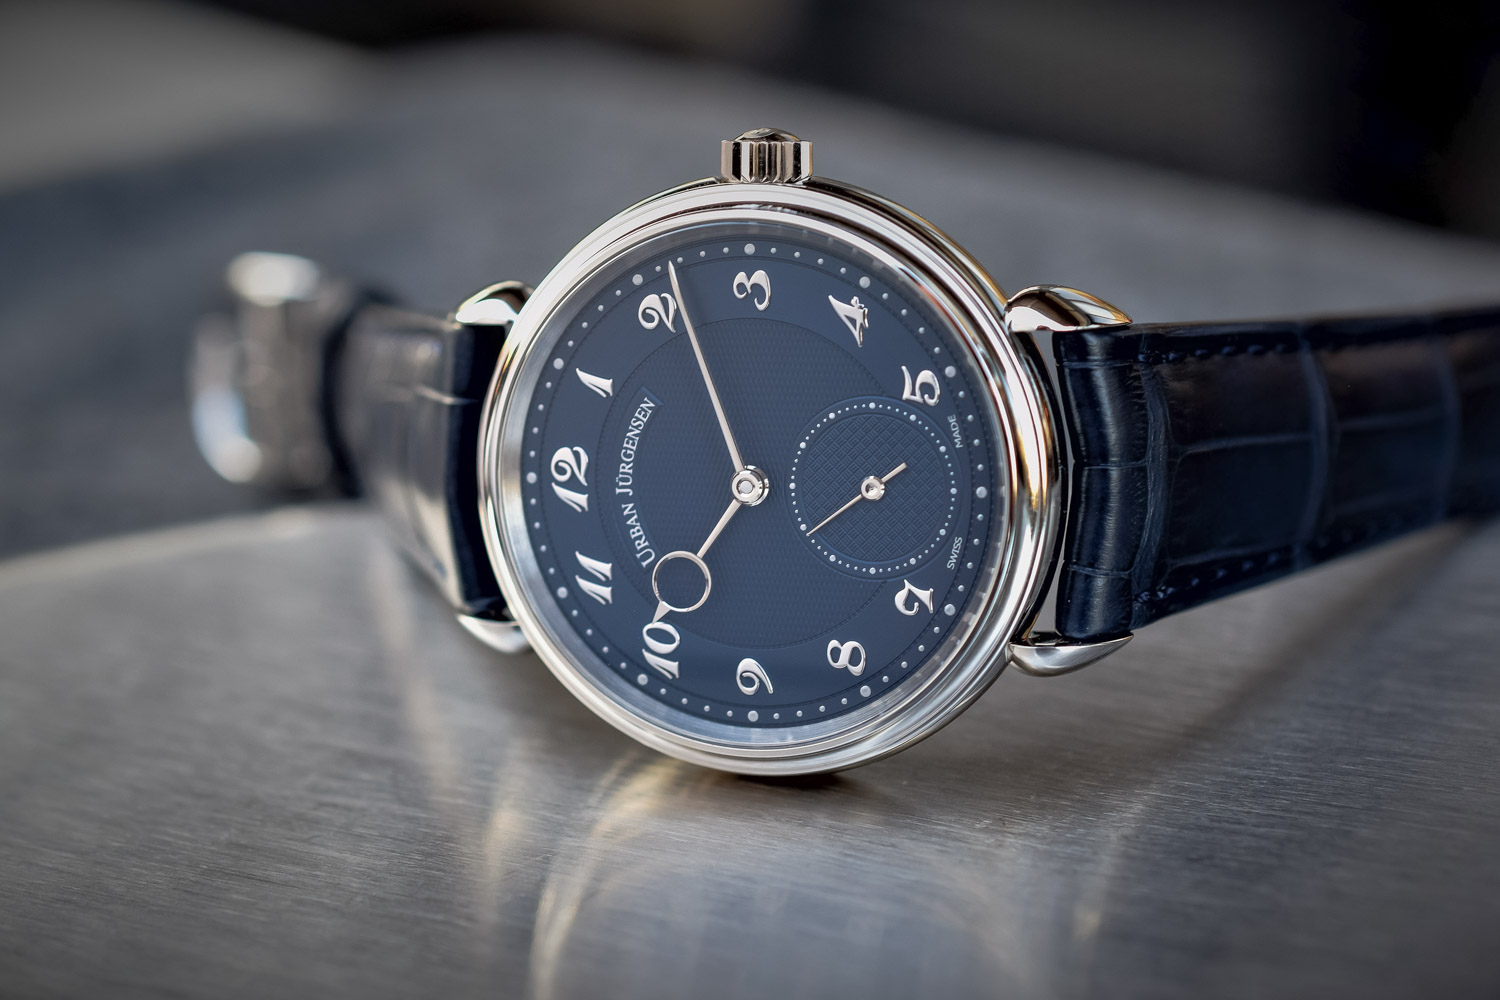 Urban Jurgensen watches